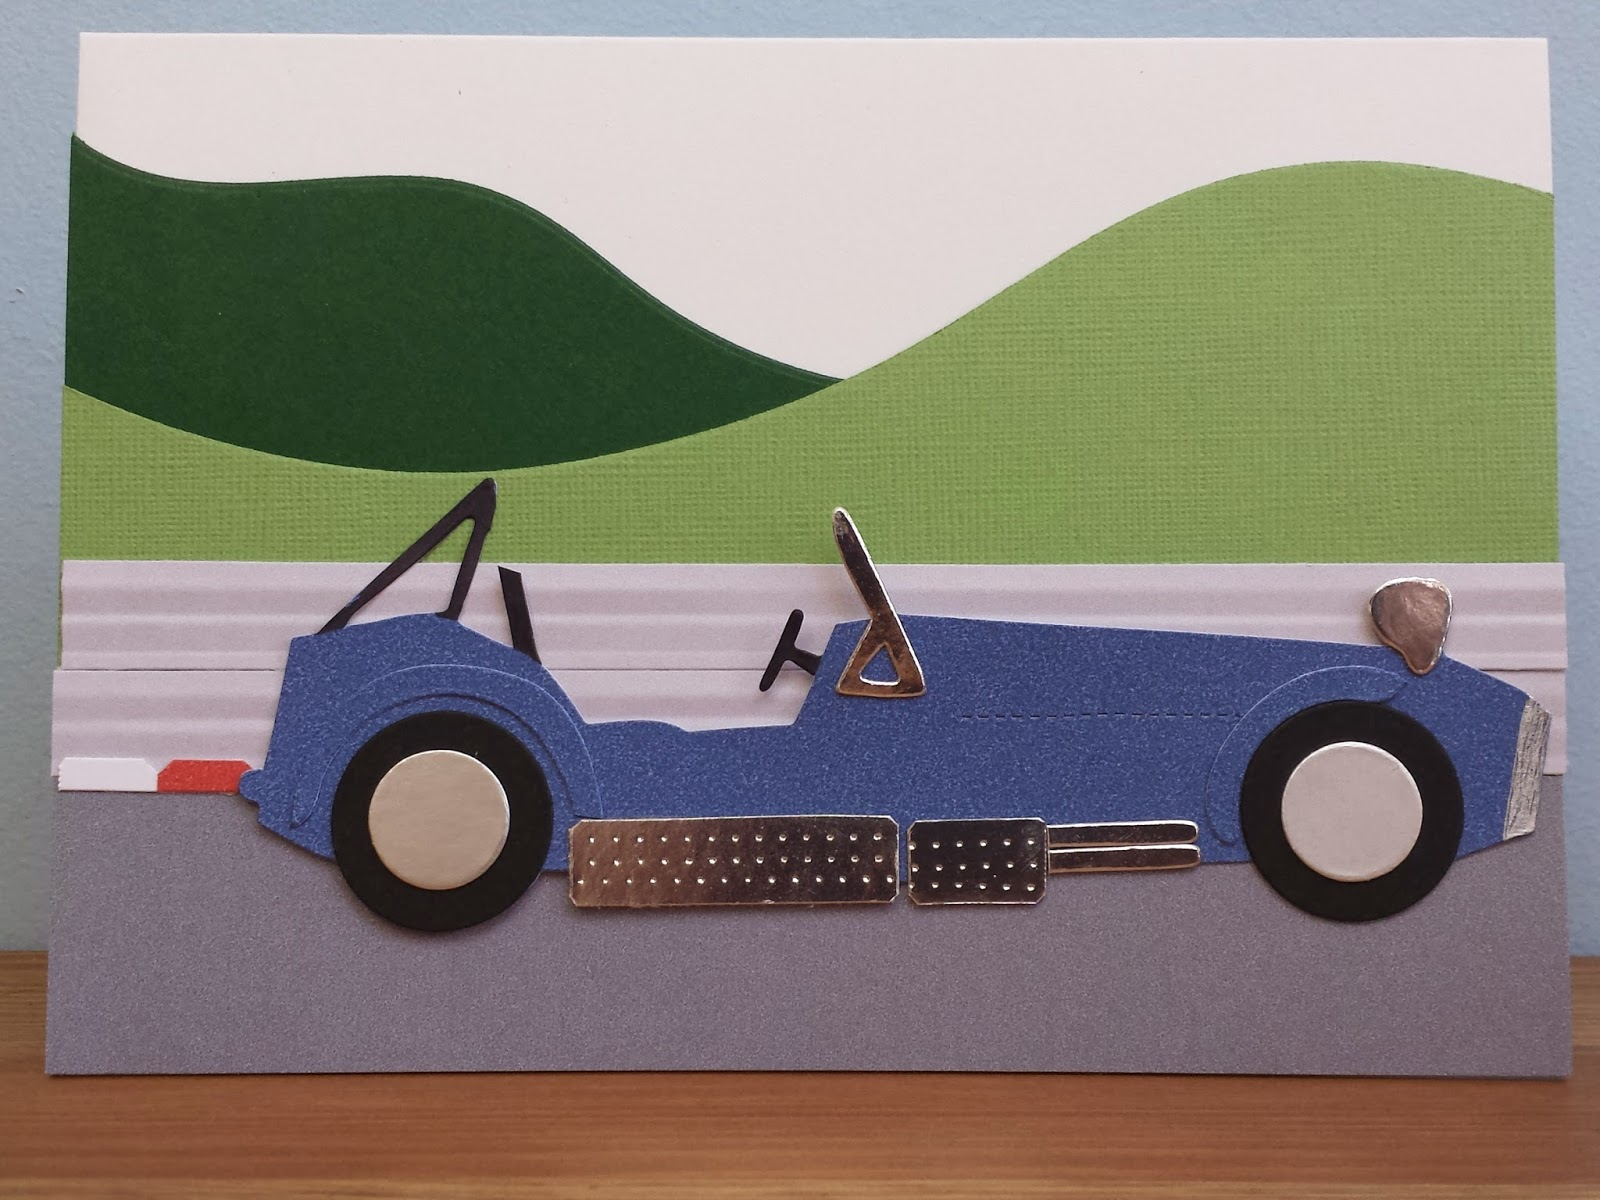 Caterham Card with multiple primaries, cat and exhaust cover and track background.